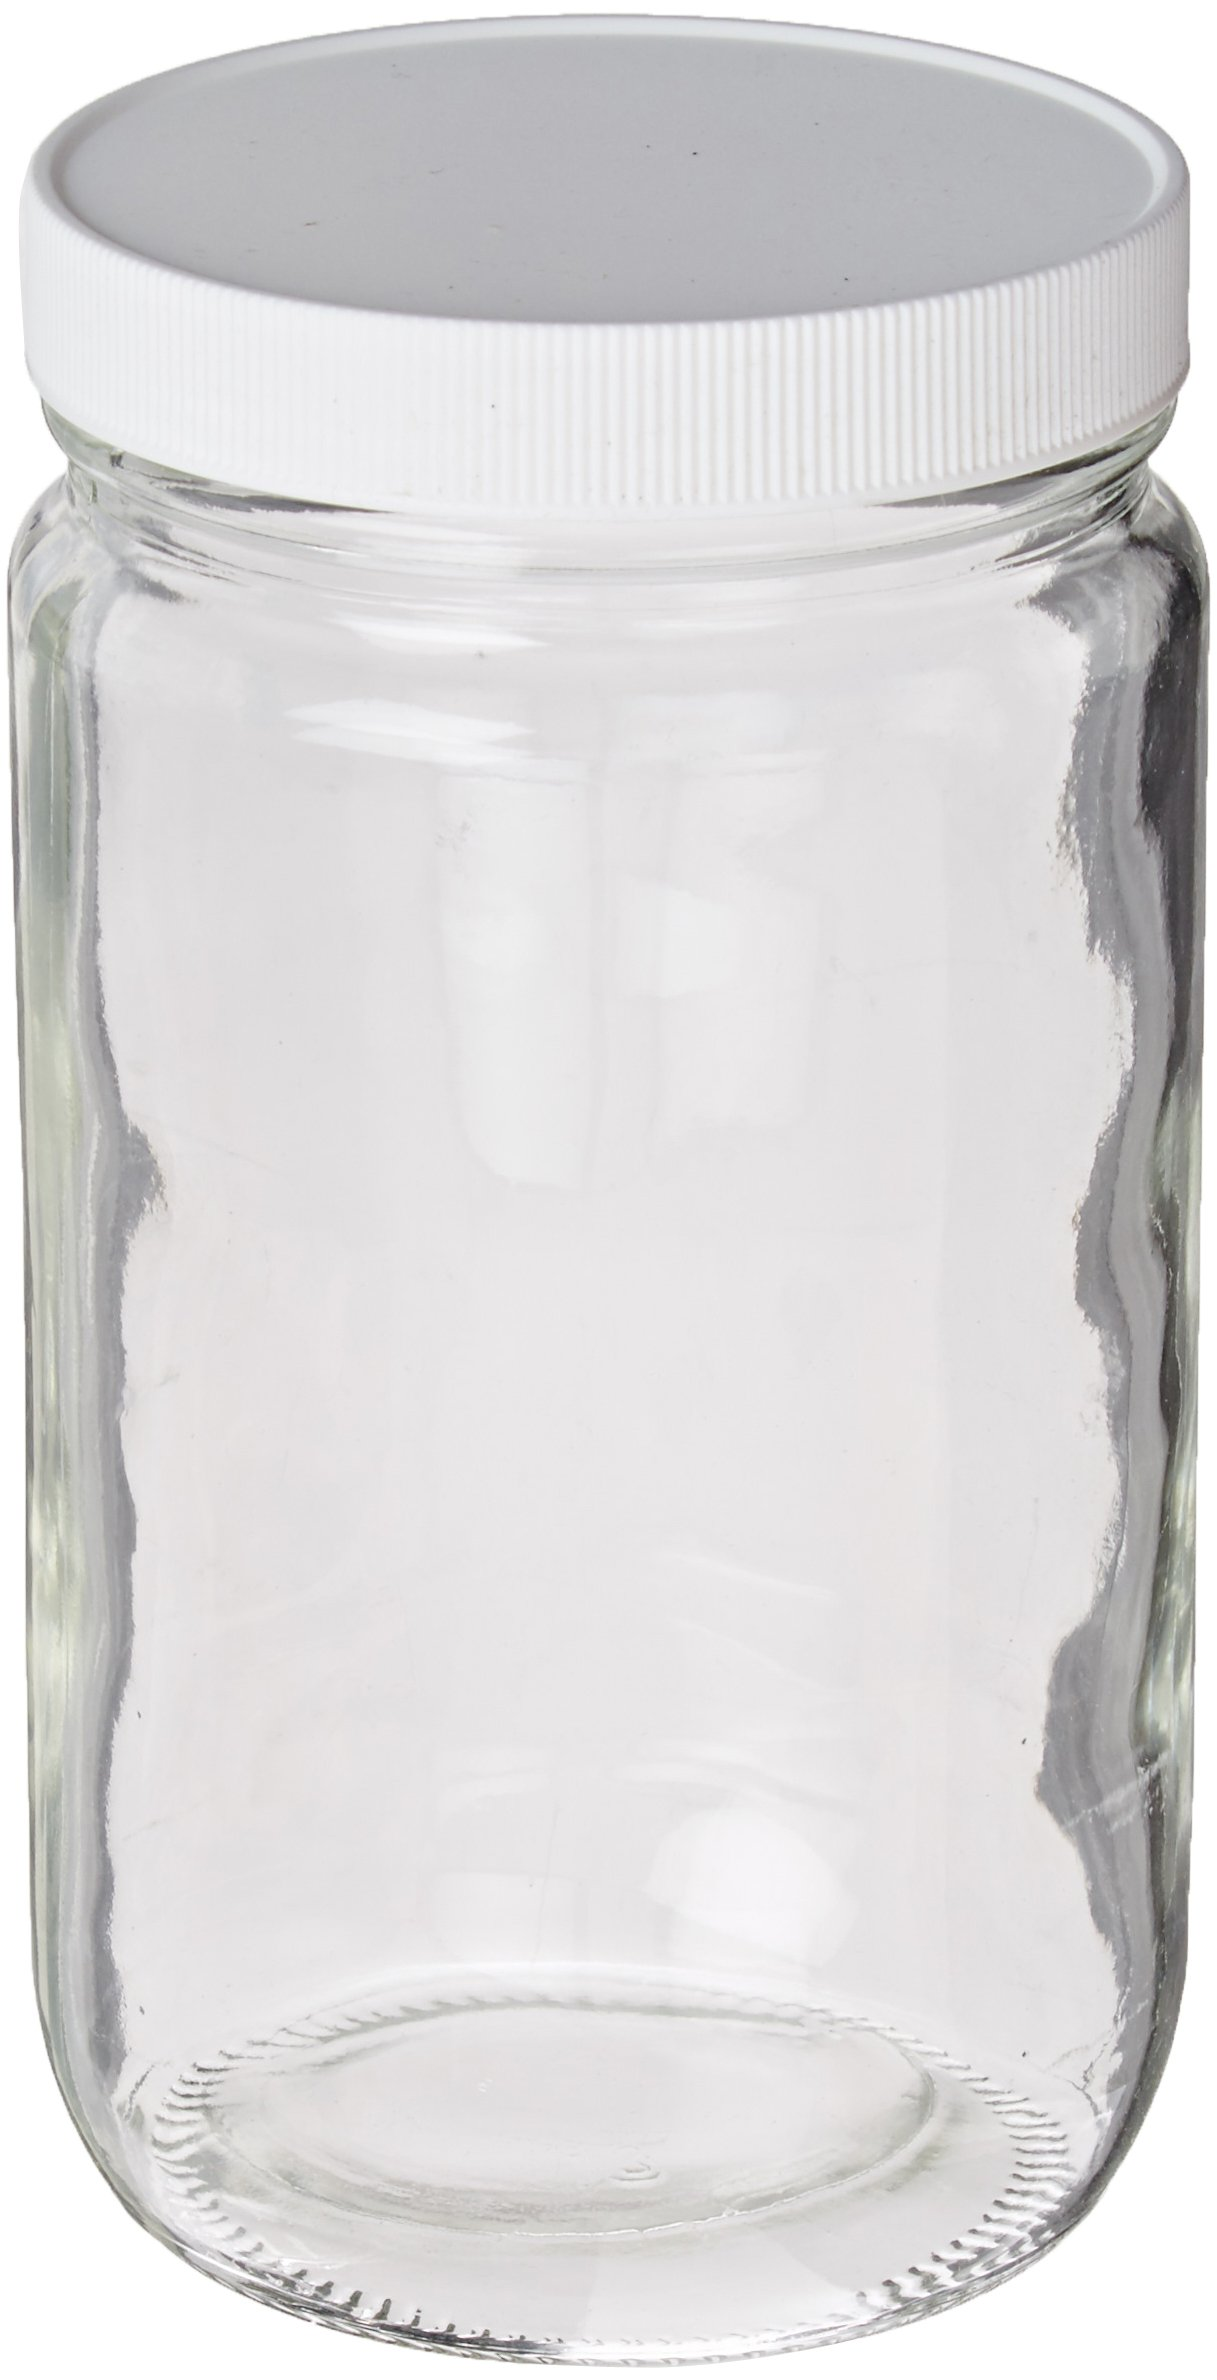 JG Finneran 9-184 Clear Borosilicate Glass Standard Short Straight Sided Wide Mouth Jar with White Polypropylene Closure and 0.015'' PTFE Lined, 89-400mm Cap Size, 1000mL Capacity (Pack of 12)